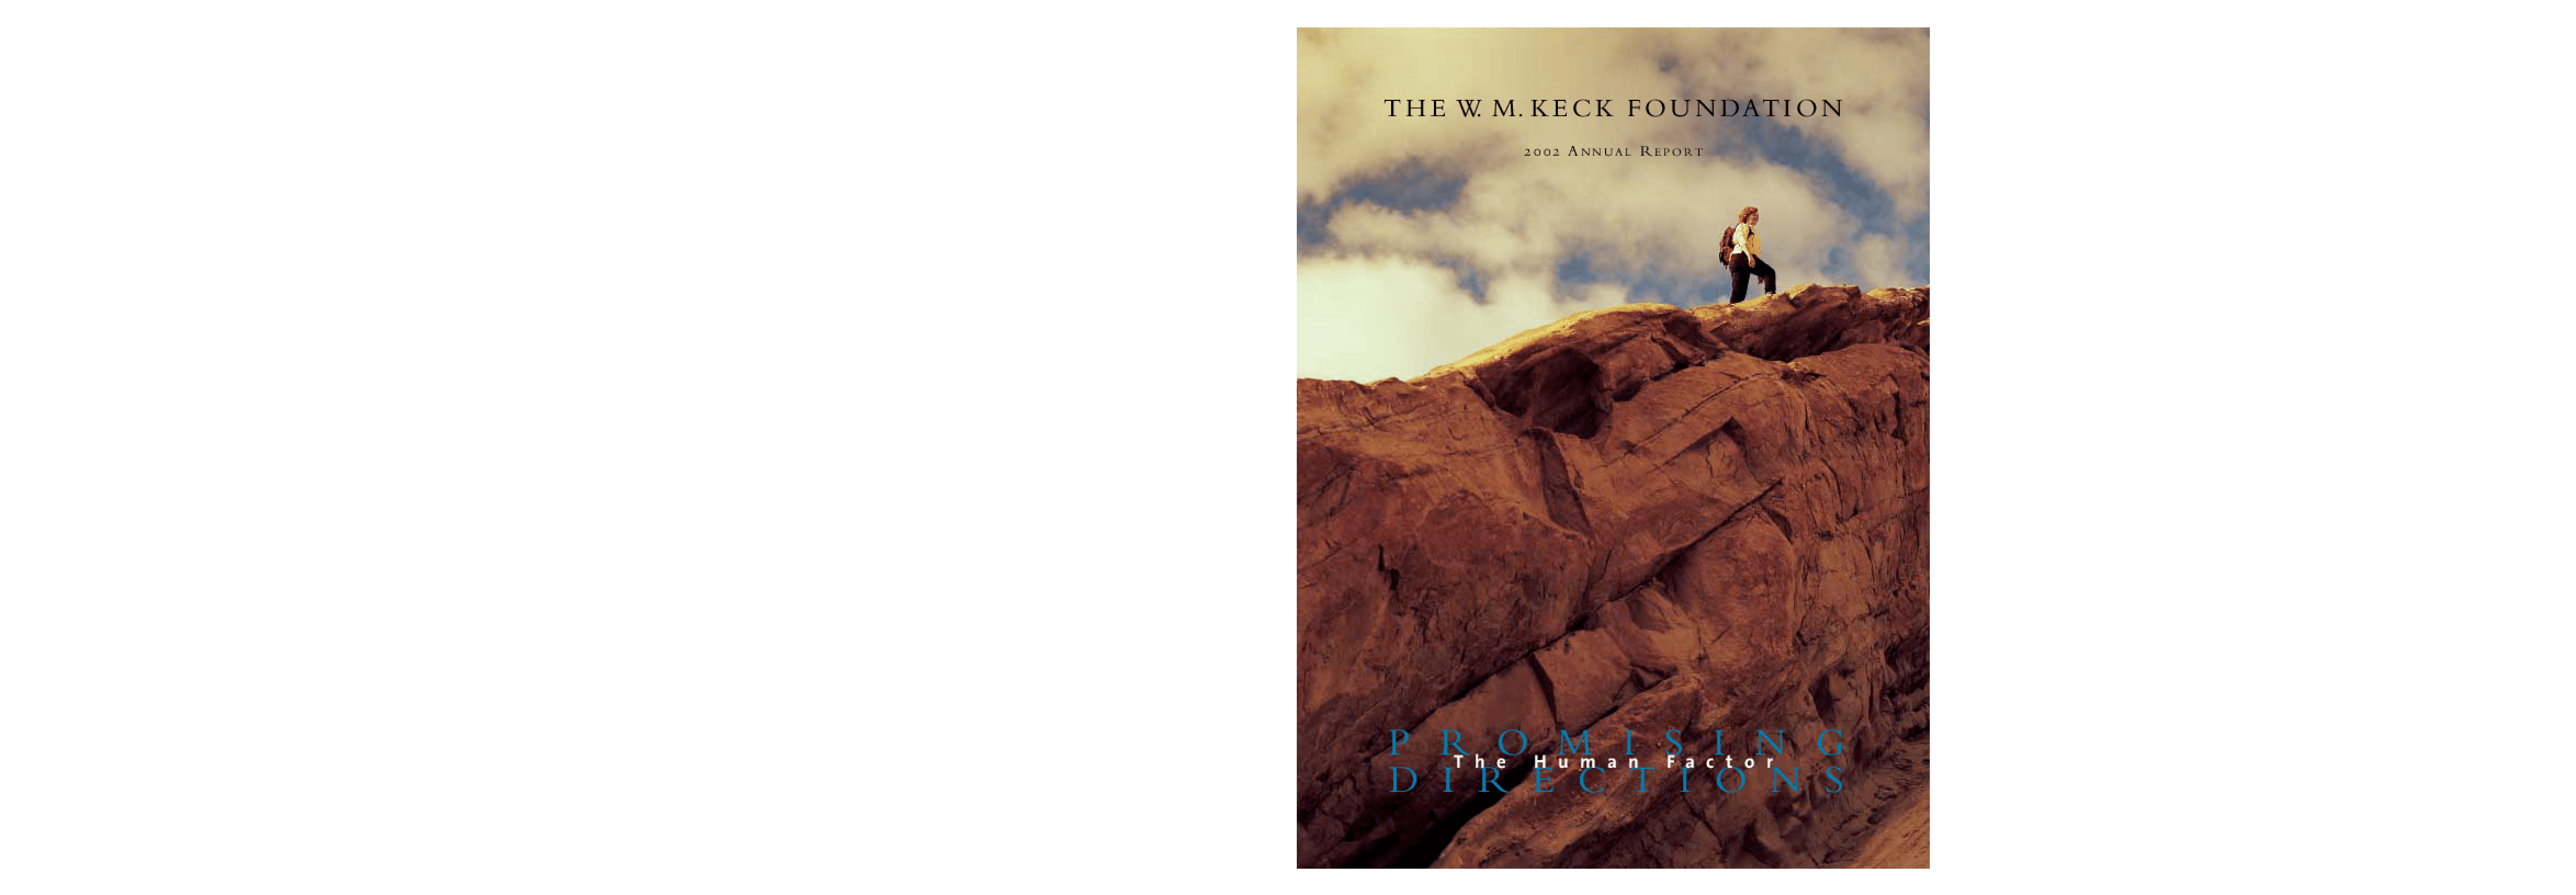 W. M. Keck Foundation - 2002 Annual Report: The Human Factor